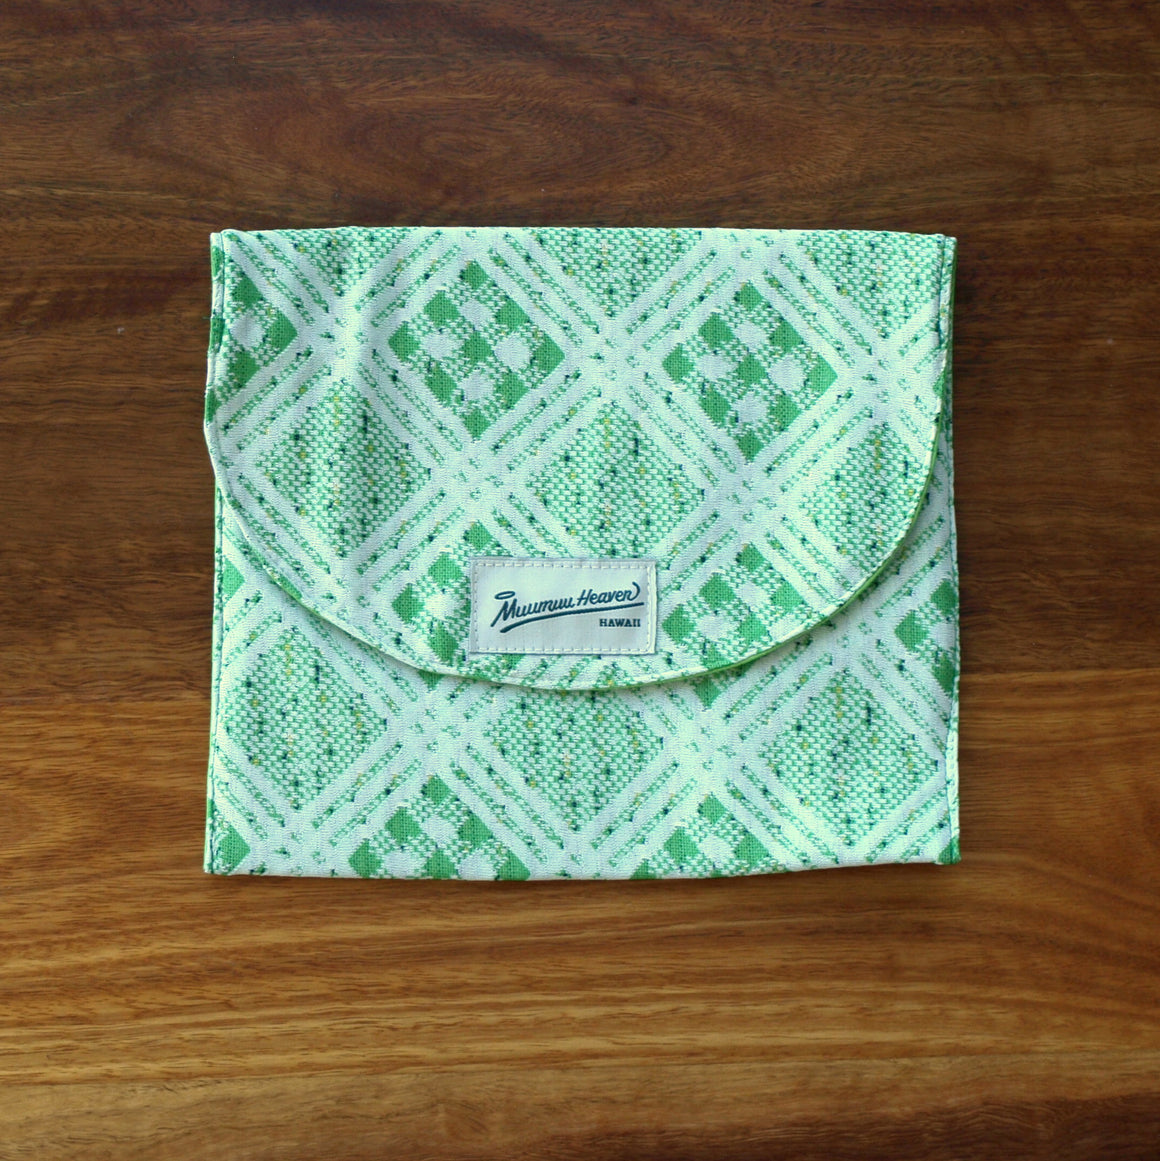 Vintage Mu'umu'u Book Bag: Green